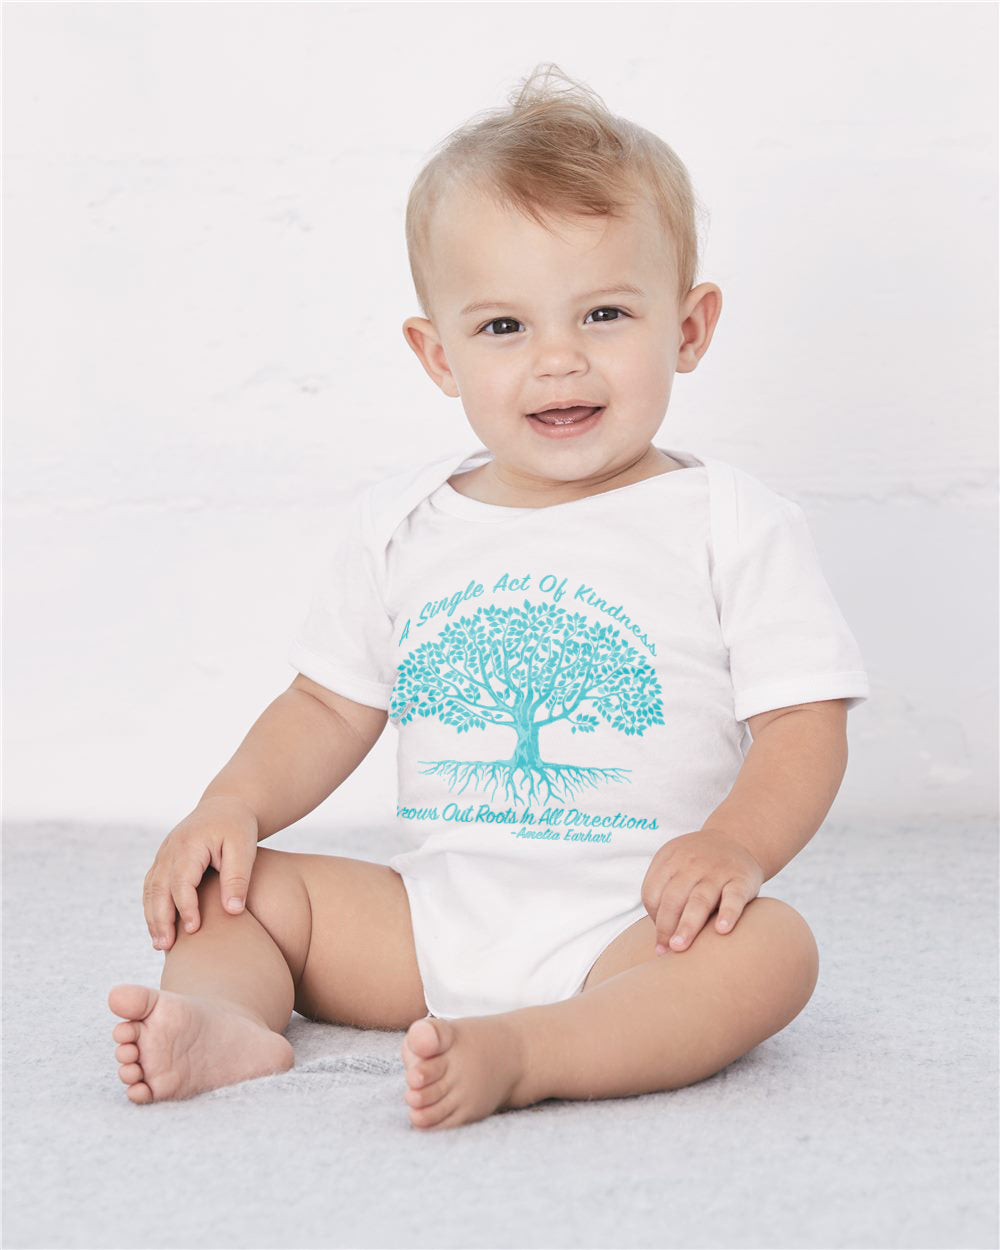 Single Act Of Kindness Baby Cozy Graphic Tee Onesie in White